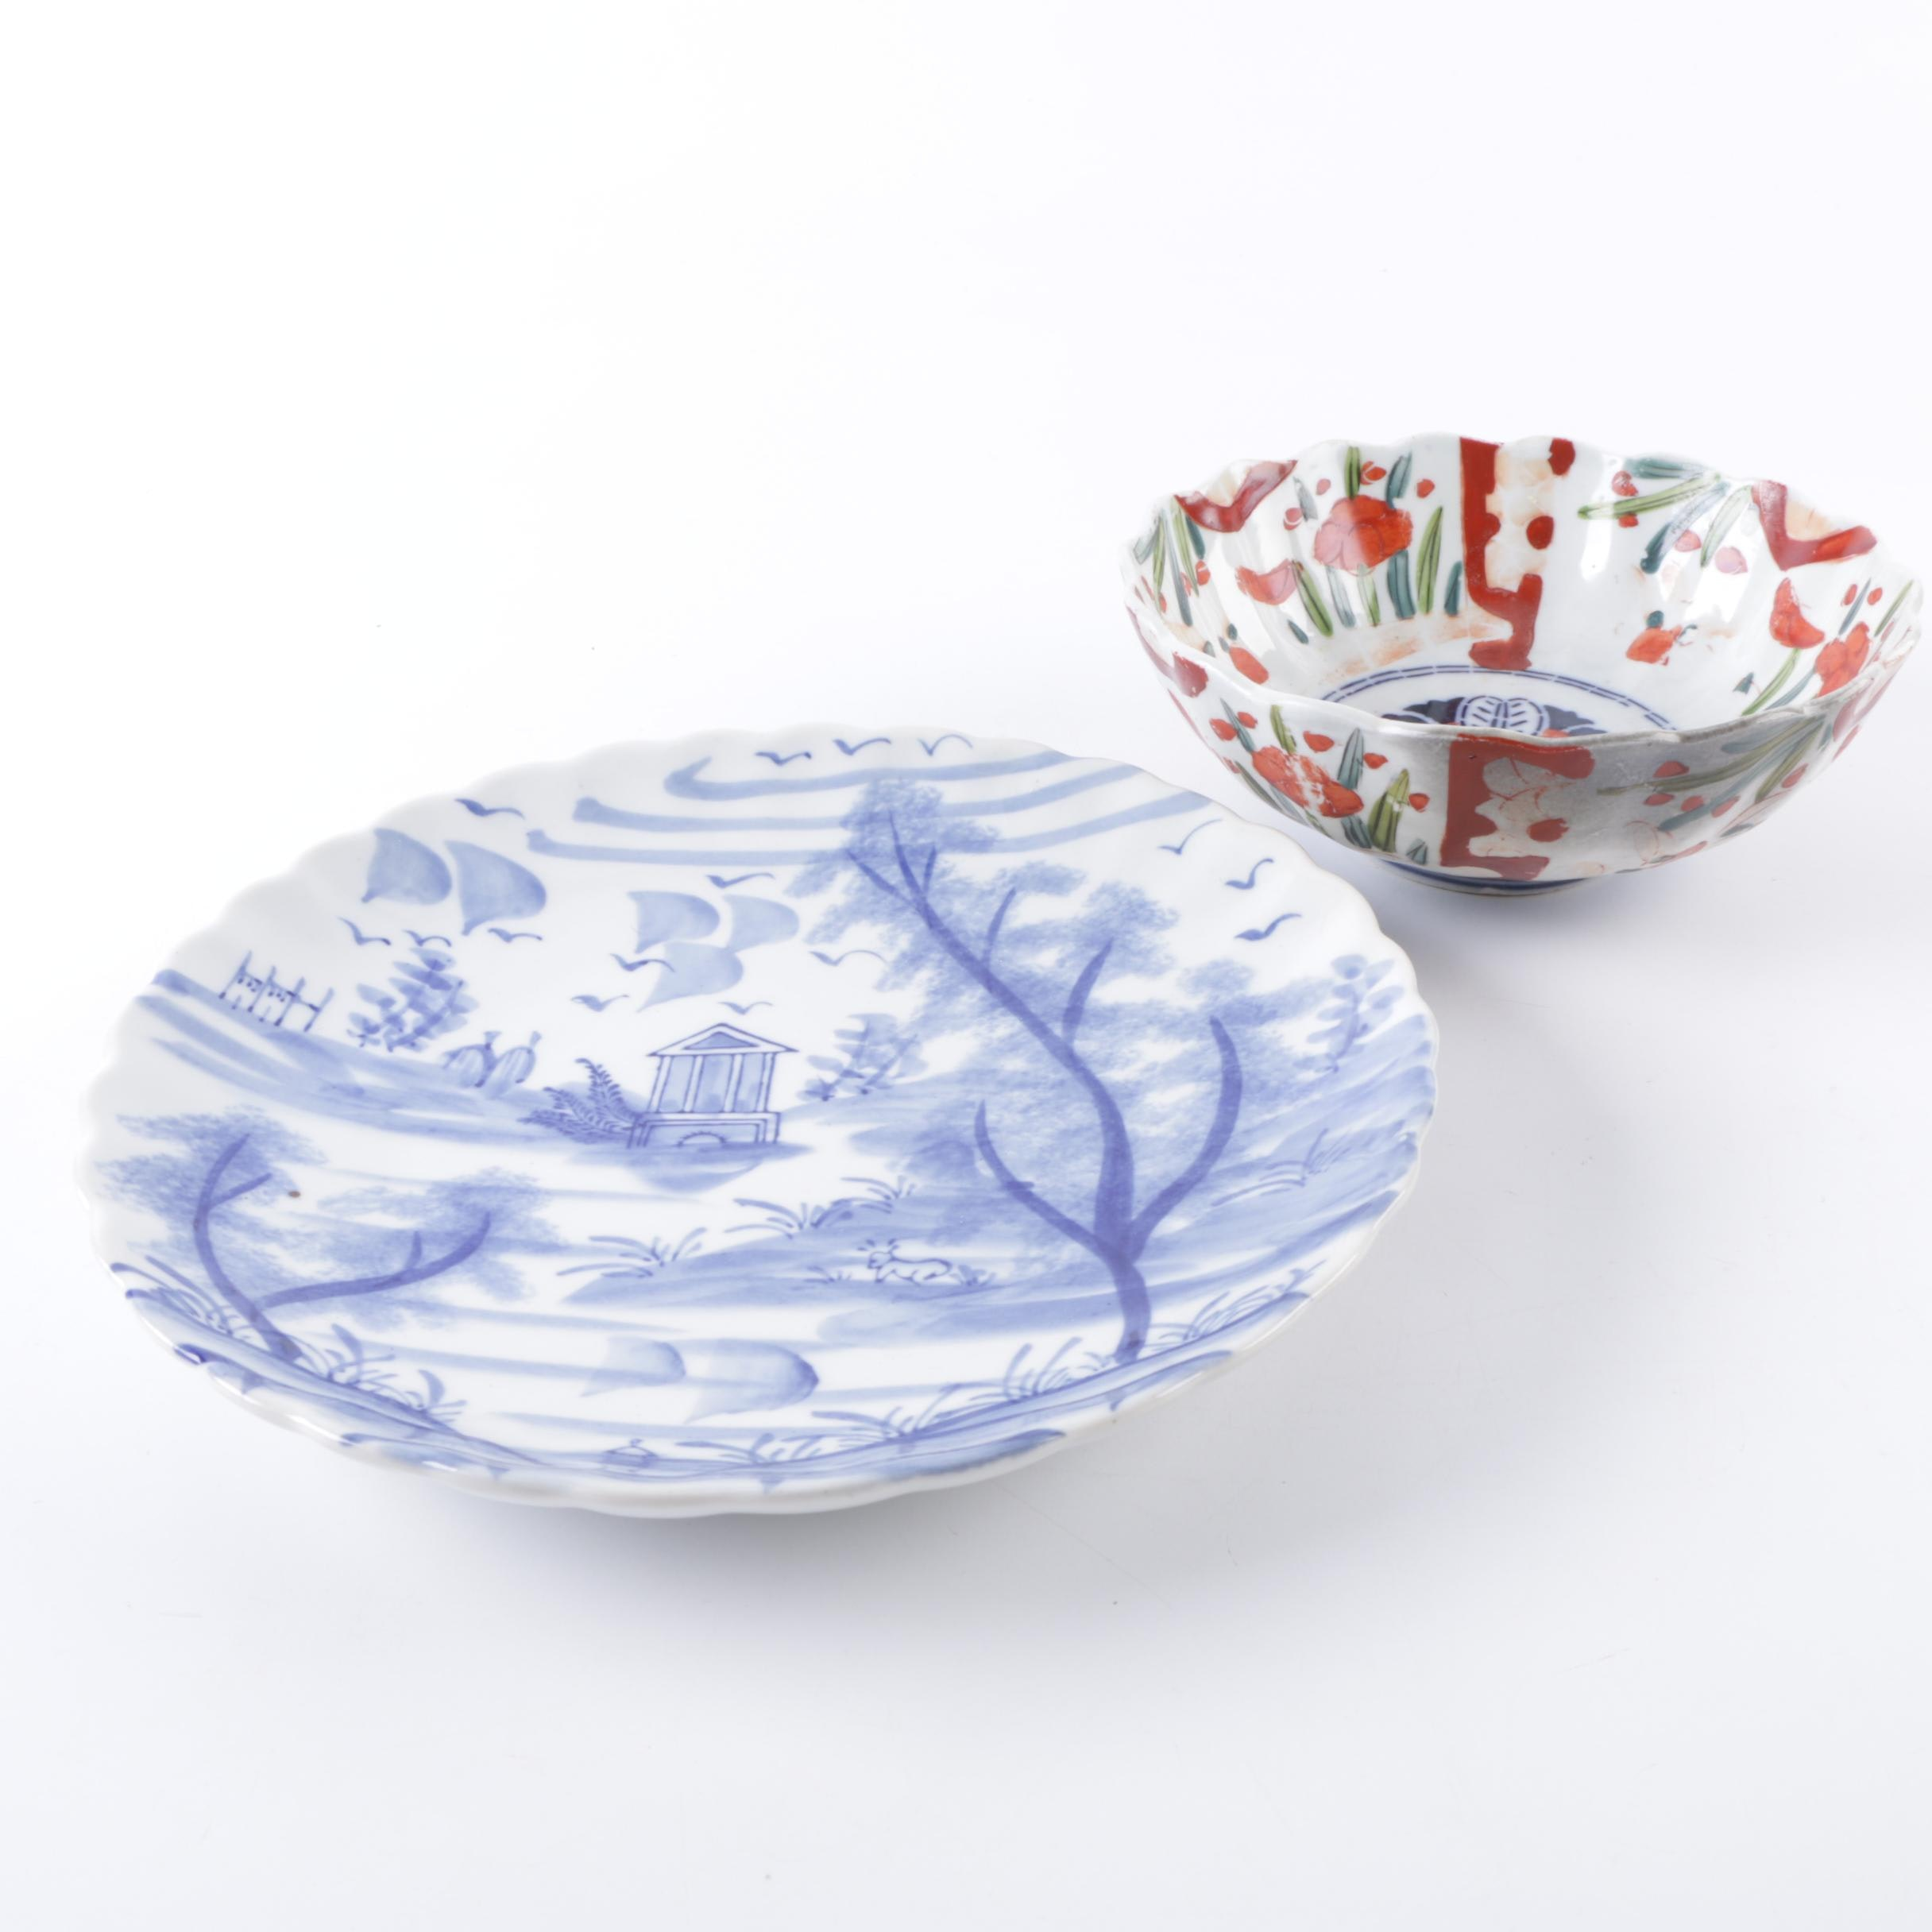 Chinese Ceramic Plate And Bowl